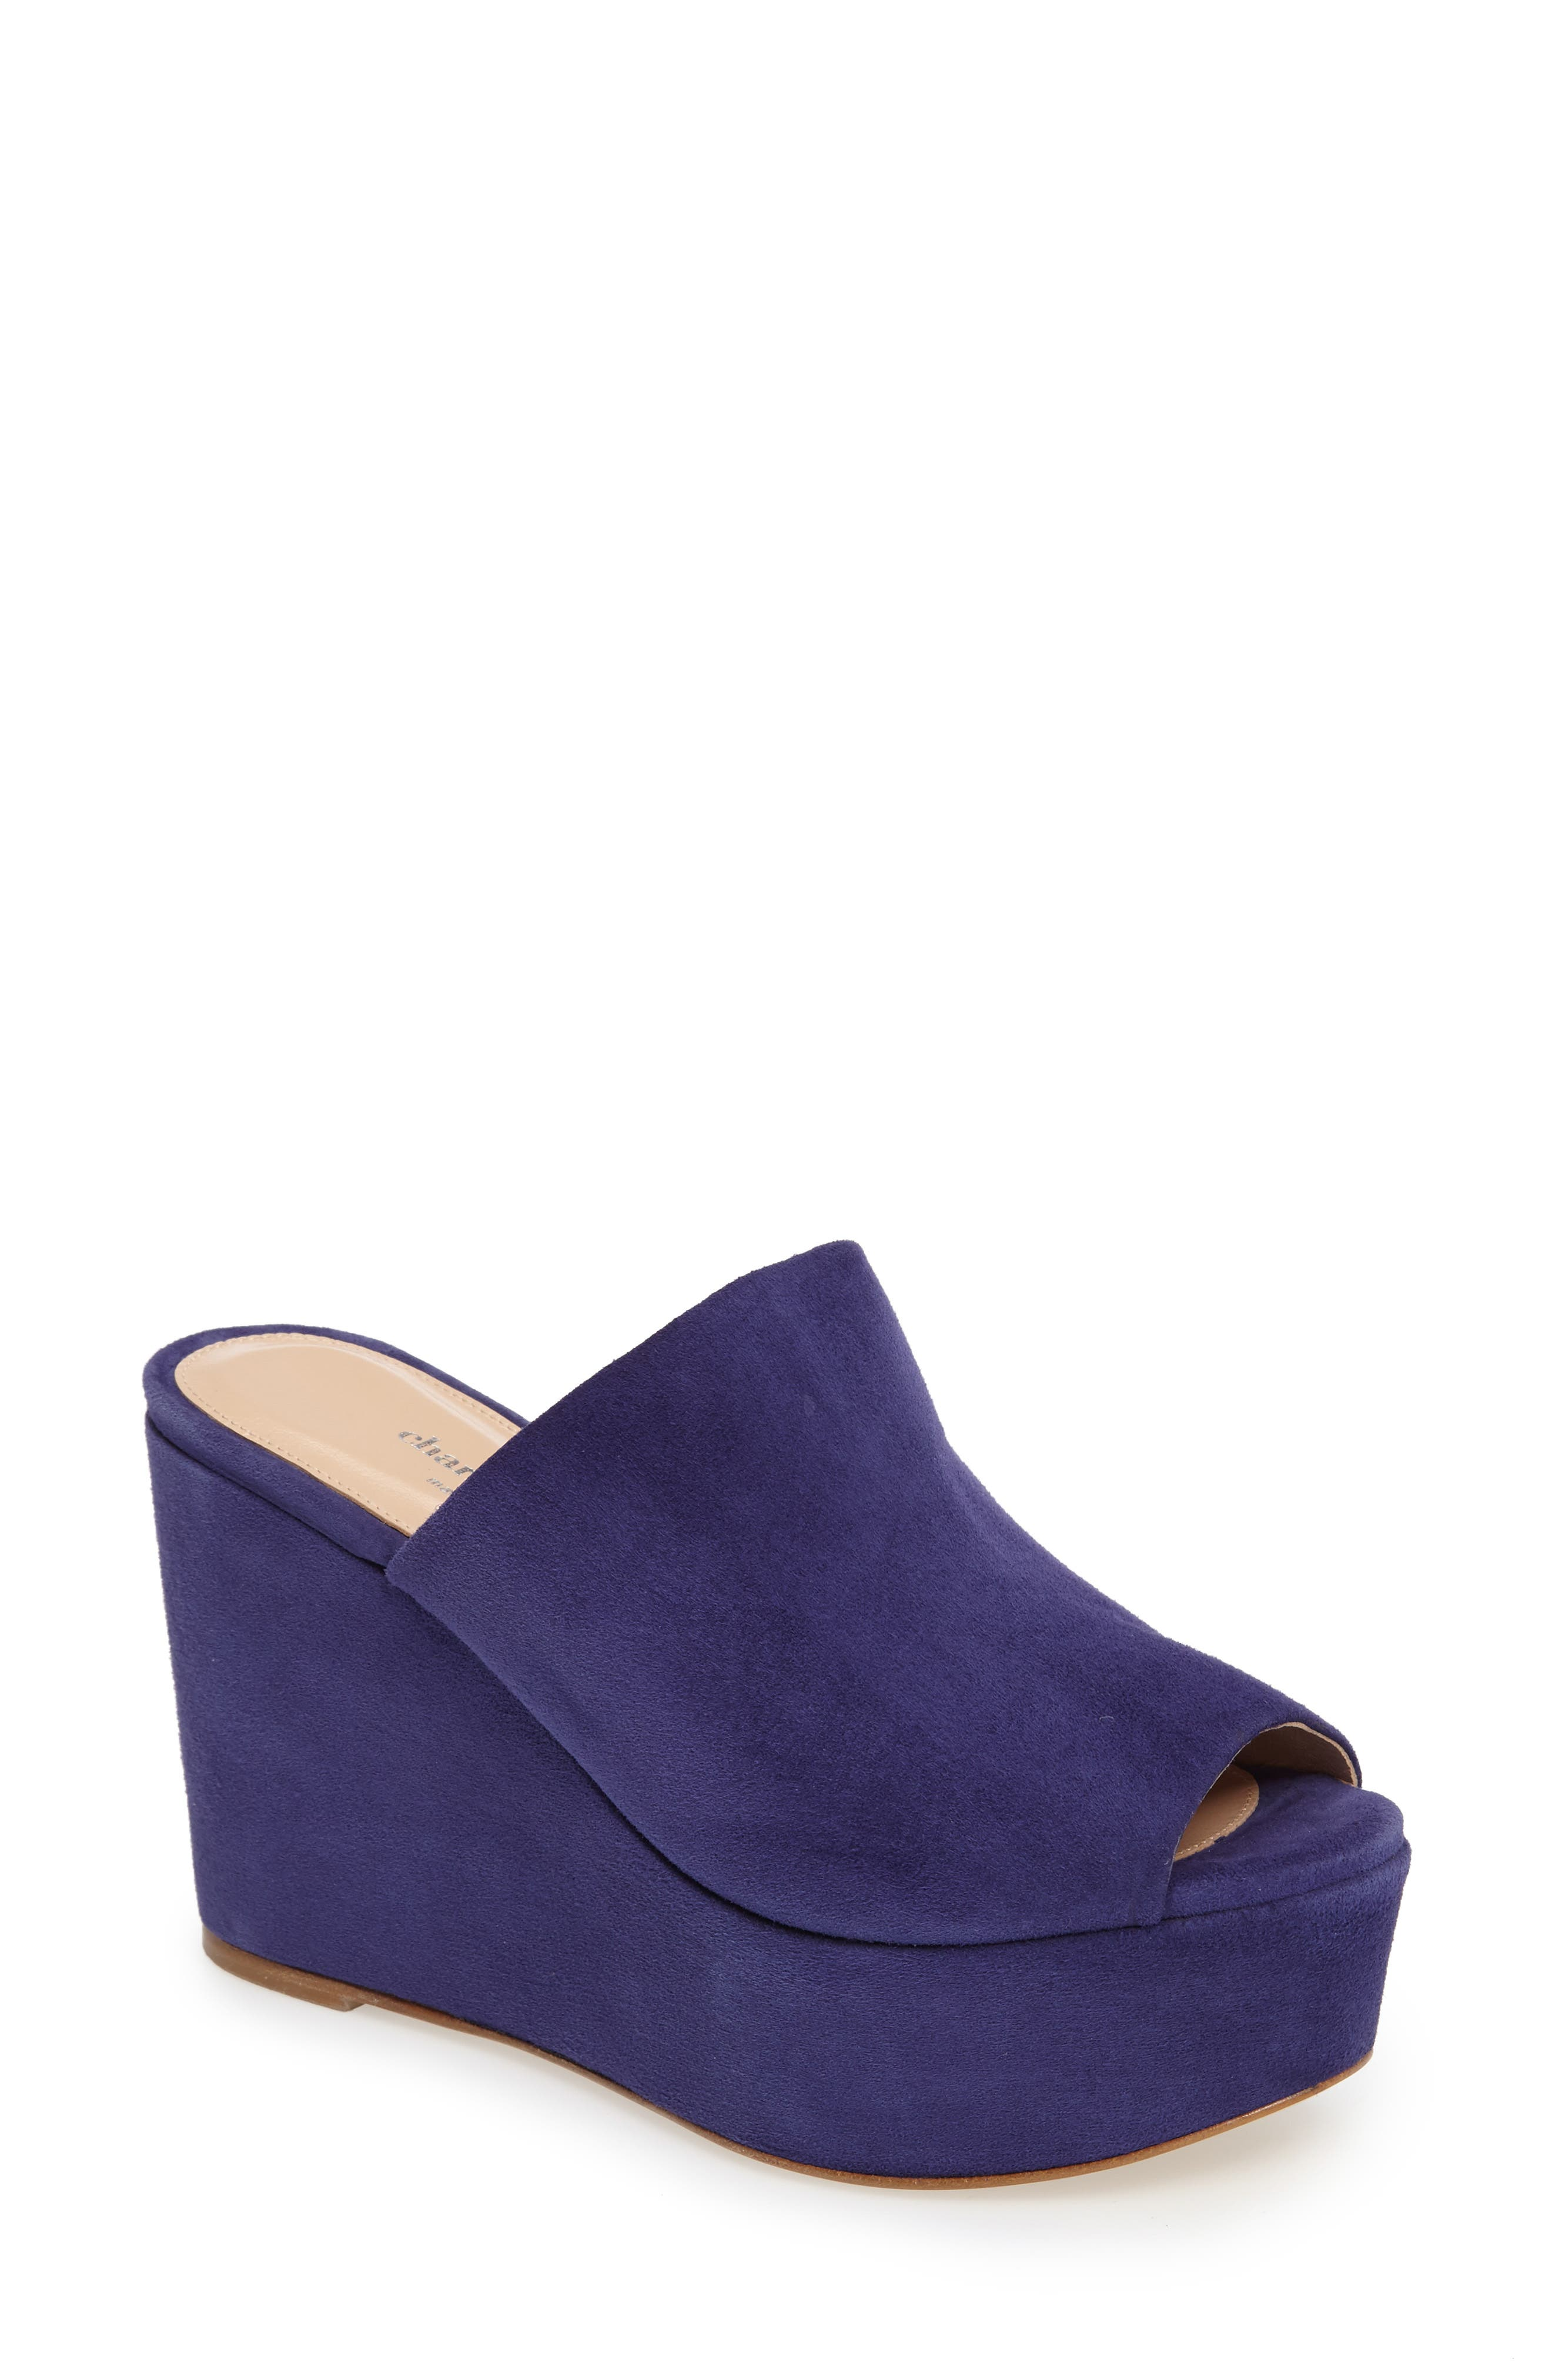 Charles by Charles David Padma Platform Wedge Mule (Women)